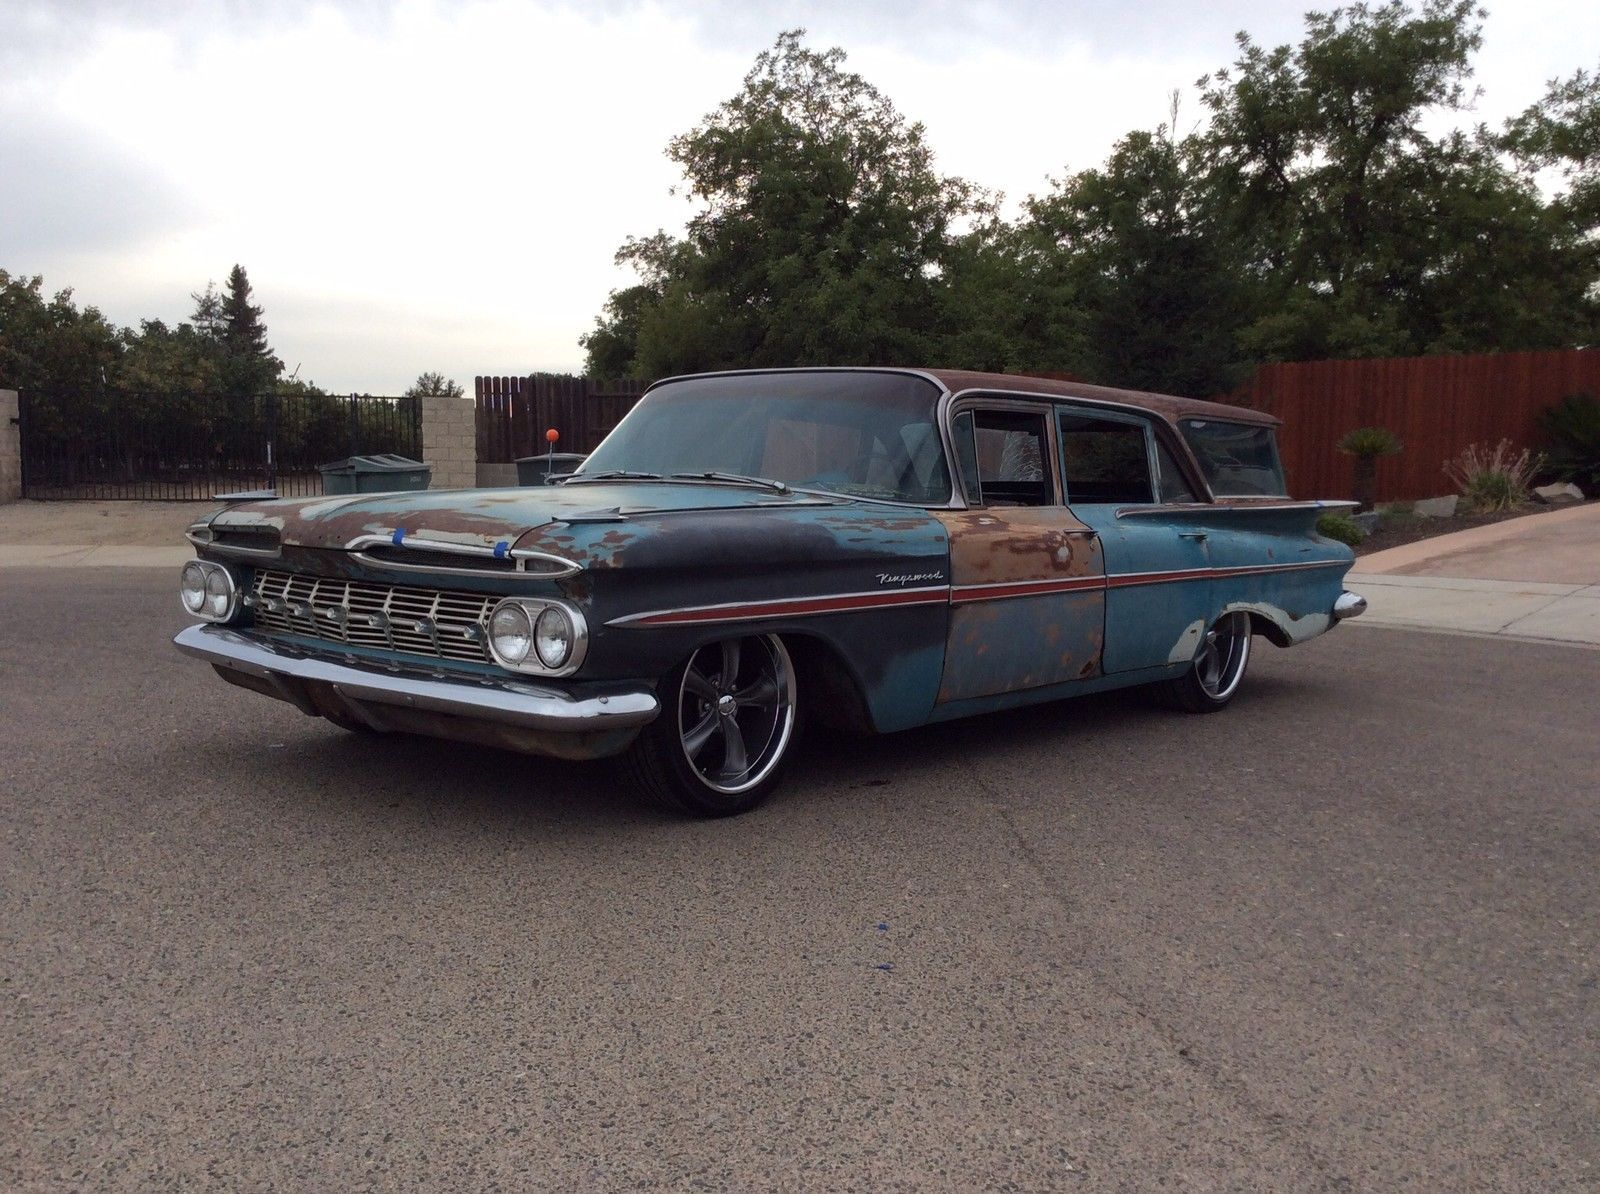 1956 ford country squire smcars net car blueprints forum - Chevrolet Impala Stainless